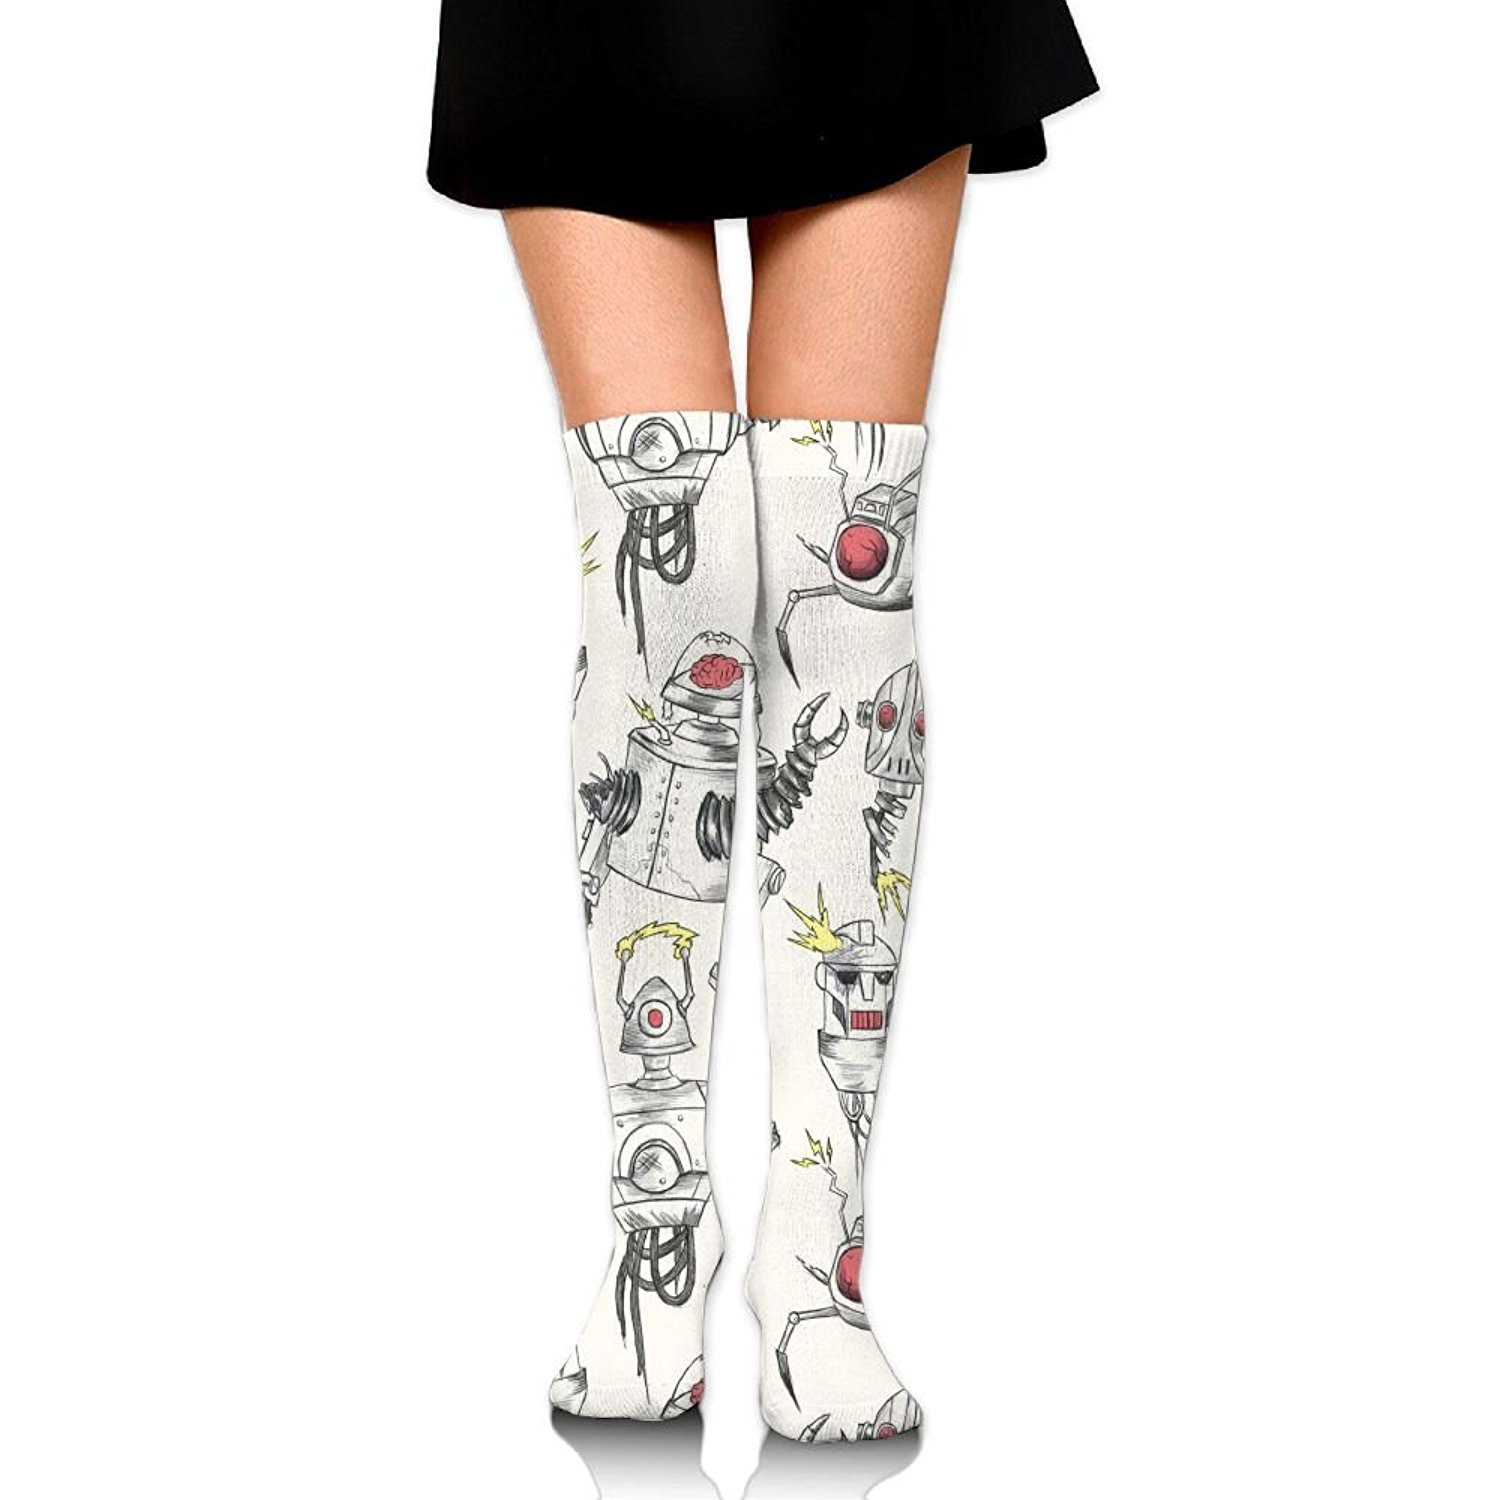 Zaqxsw Color Robot Women Retro Thigh High Socks Cotton Socks For Womens